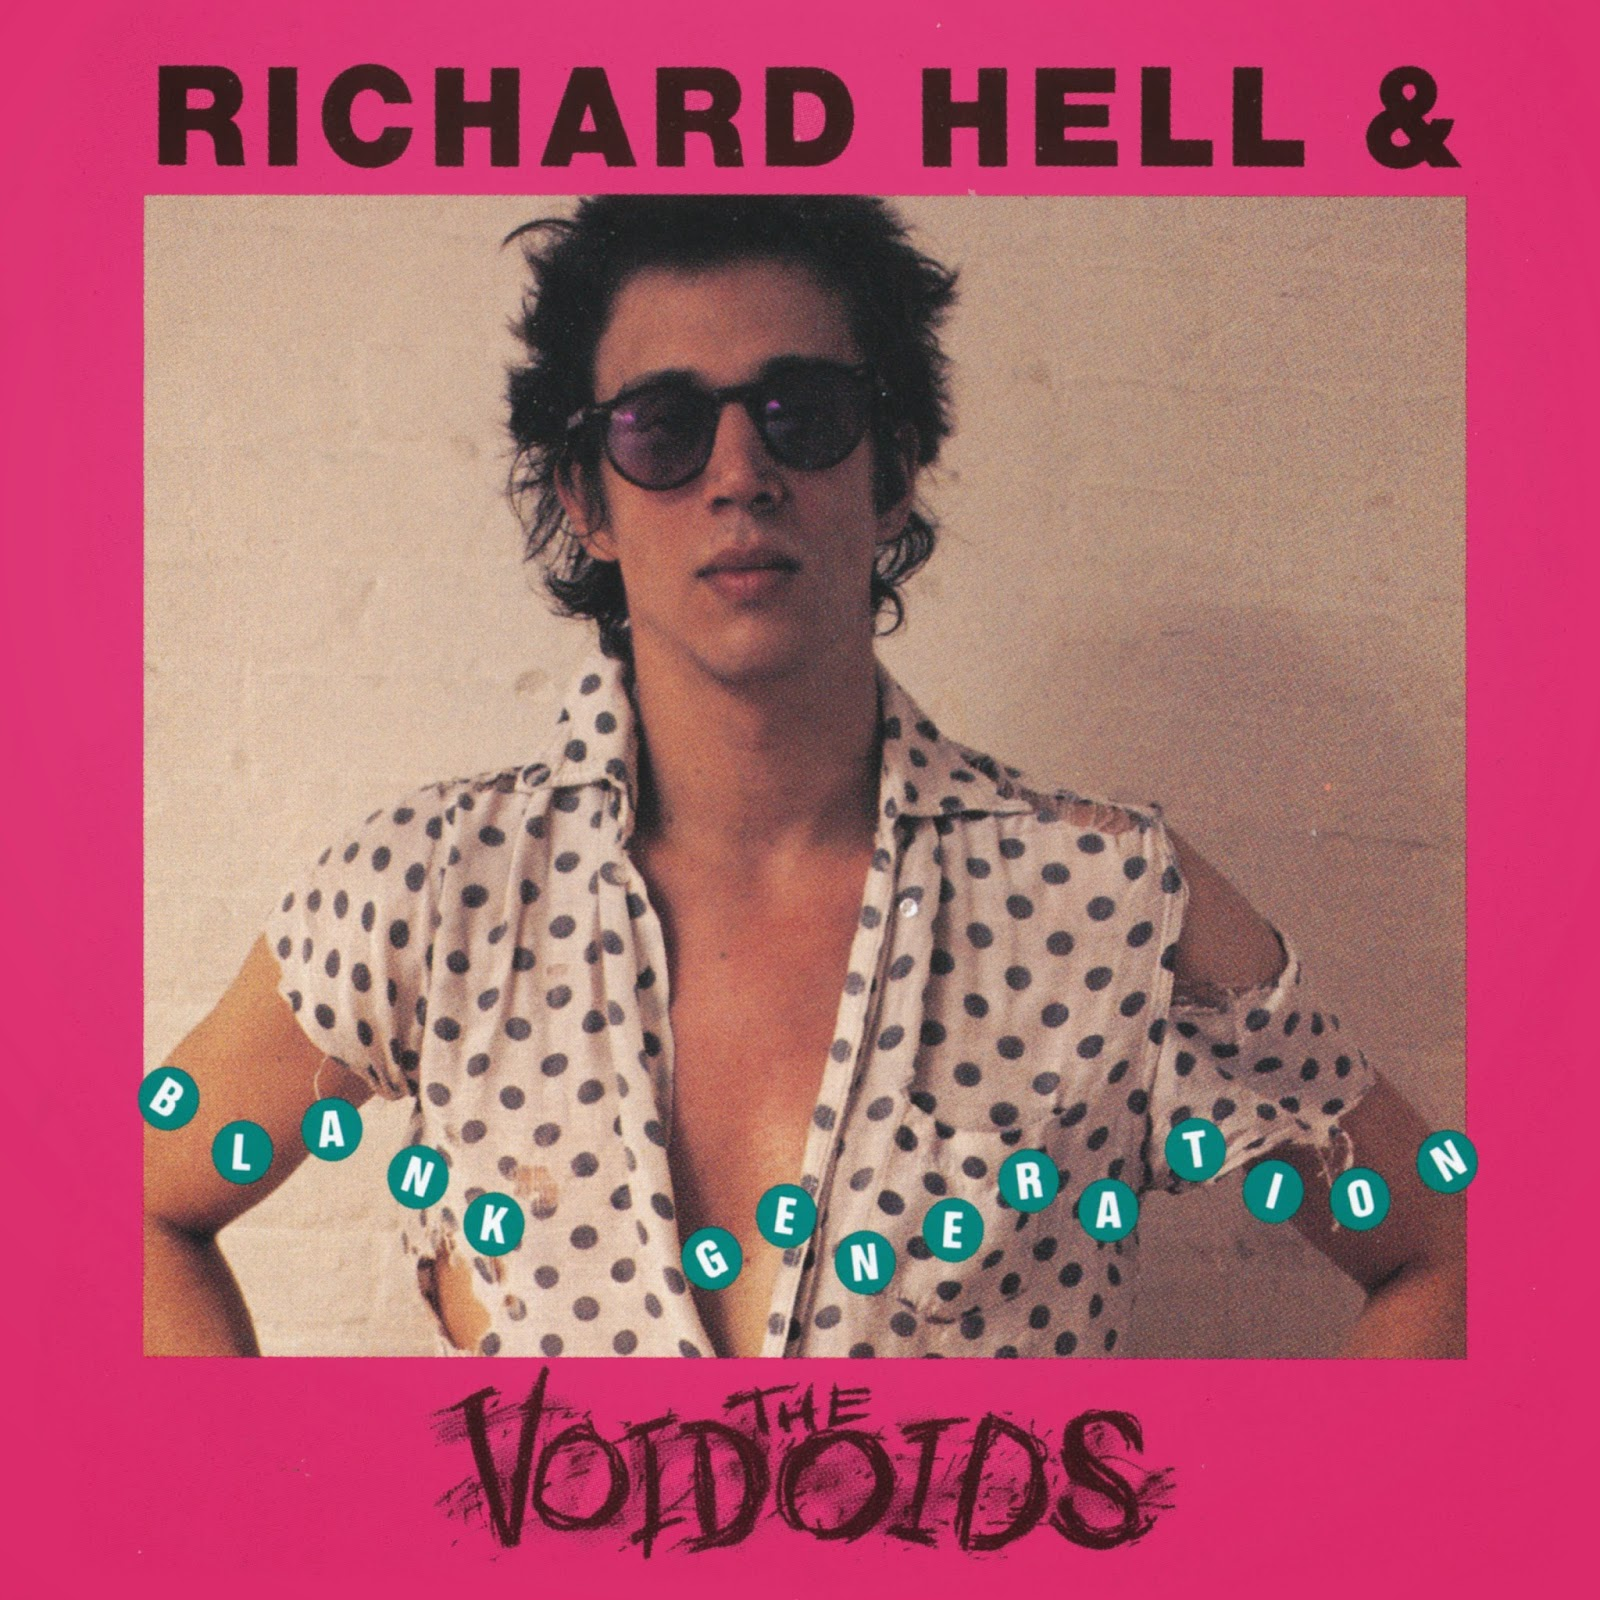 richard-hell-the-voidoids